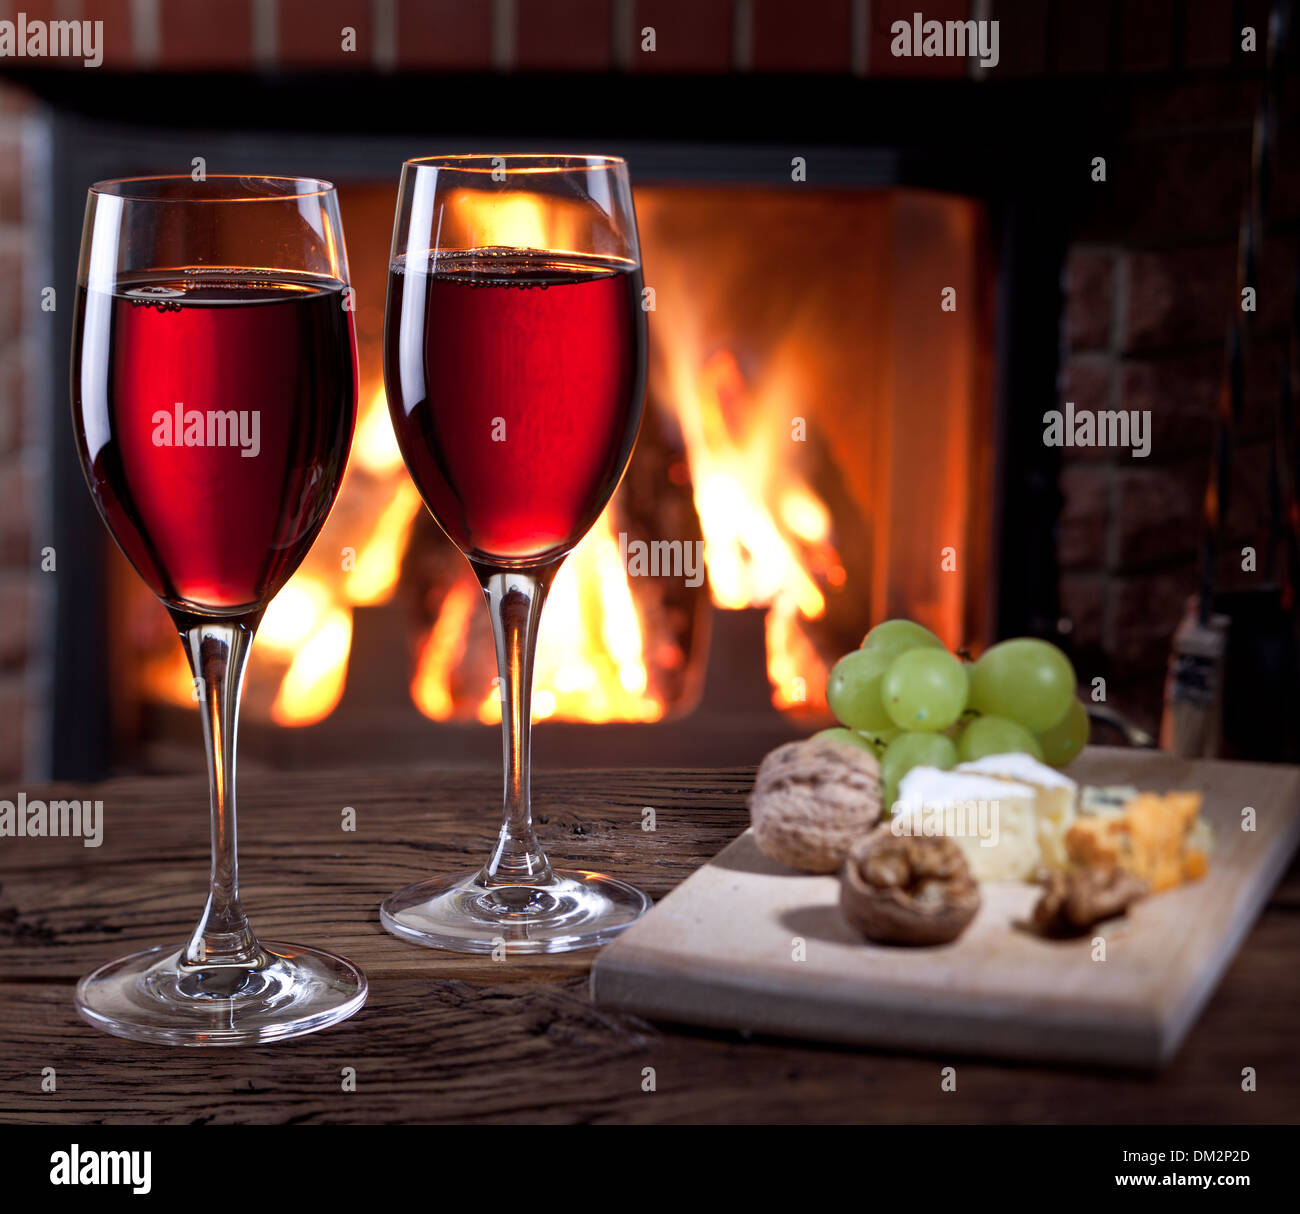 Romantic still life near the fireplace. Glasses of wine, cheese and nuts. - Stock Image